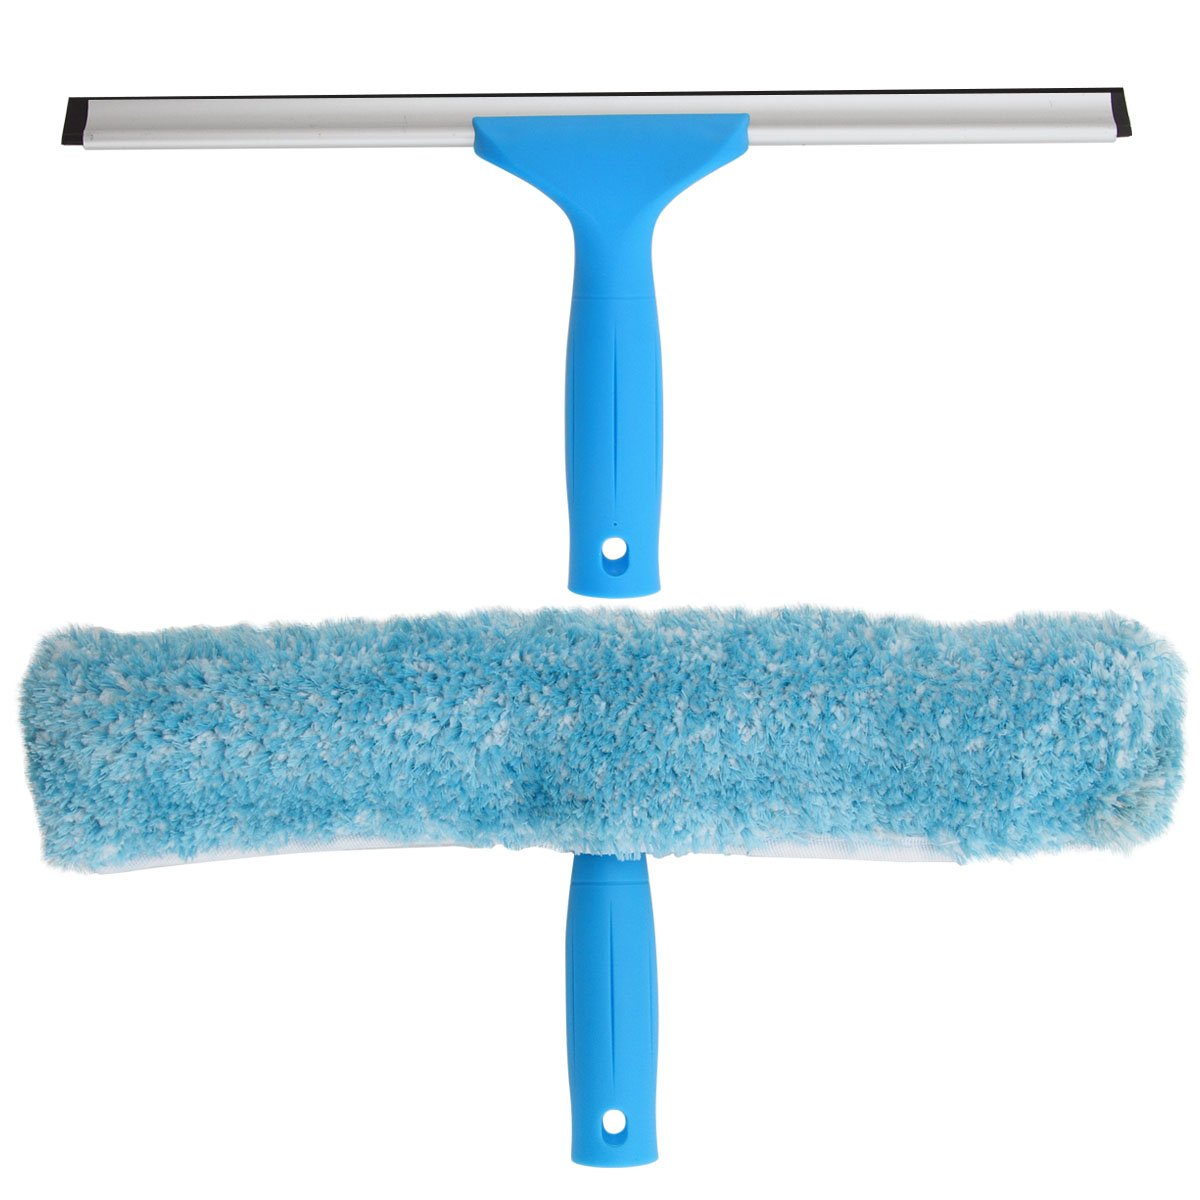 MR. SIGA Window Cleaning Combo - Squeegee & Microfiber Window Washer, Size: 35cm Ningbo Shijia Cleaning Tools Co. Ltd. H&PC-80992